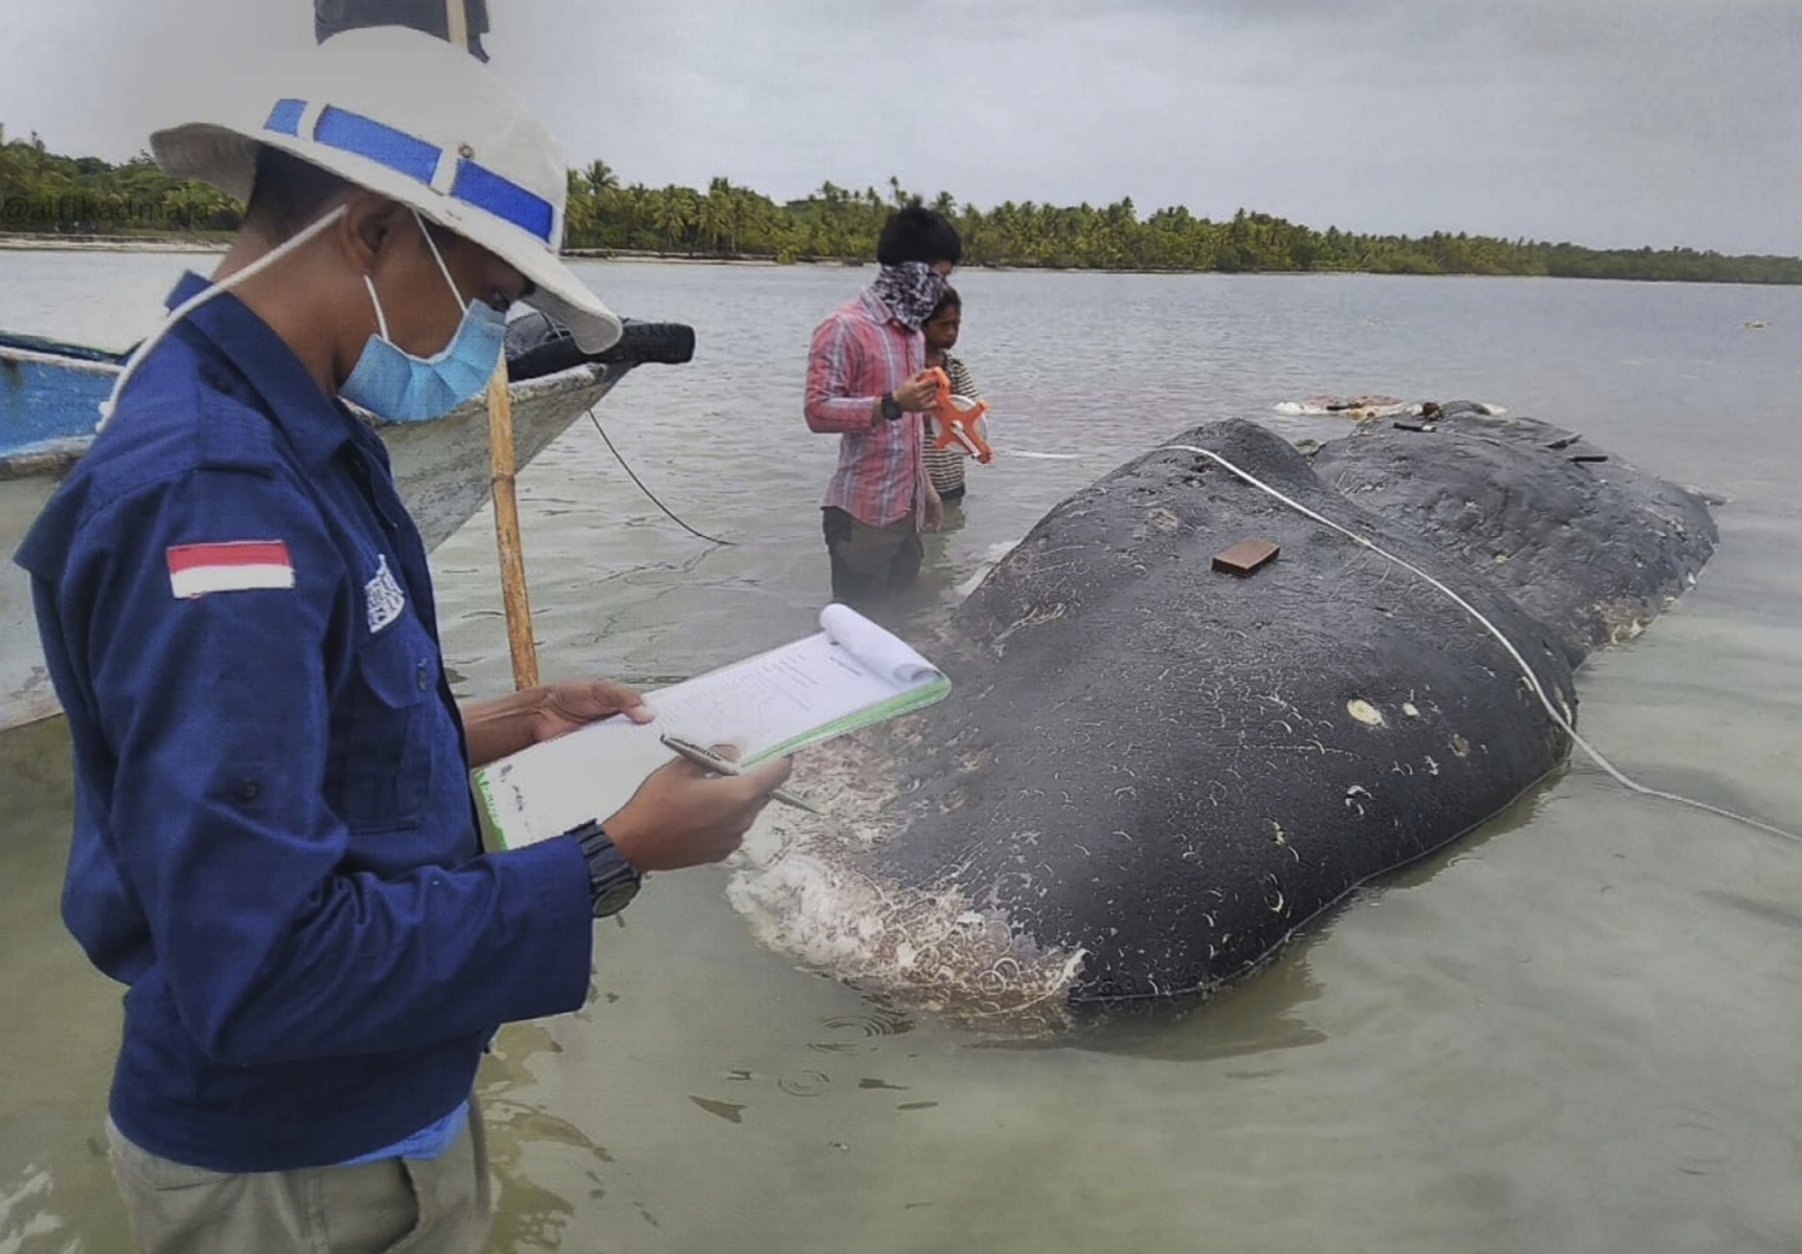 In this undated photo released by Akademi Komunitas Kelautan dan Perikanan Wakatobi (Wakatobi Marine and Fisheries Community Academy or AKKP Wakatobi), researchers collect data of the carcass of a beached whale at Wakatobi National Park in Southeast Sulawesi, Indonesia. The dead whale that washed ashore in eastern Indonesia had a large lump of plastic waste in its stomach, including drinking cups and flip-flops, a park official said Tuesday, causing concern among environmentalists and government officials in one of the world's largest plastic polluting countries. (Muhammad Irpan Sejati Tassakka, AKKP Wakatobi via AP)